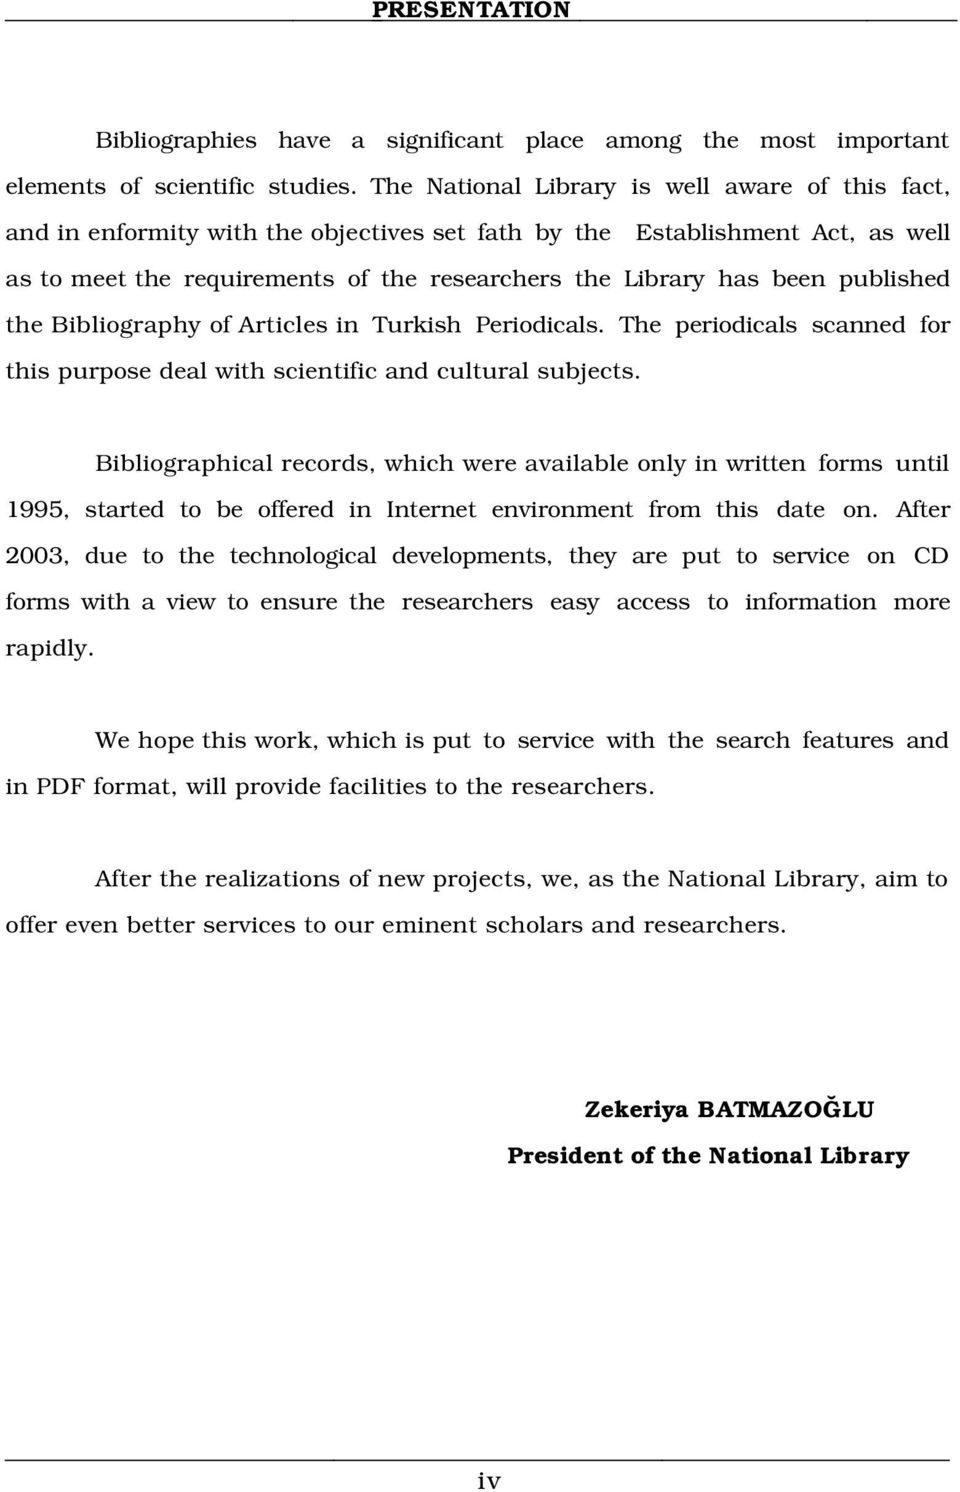 published the Bibliography of Articles in Turkish Periodicals. The periodicals scanned for this purpose deal with scientific and cultural subjects.